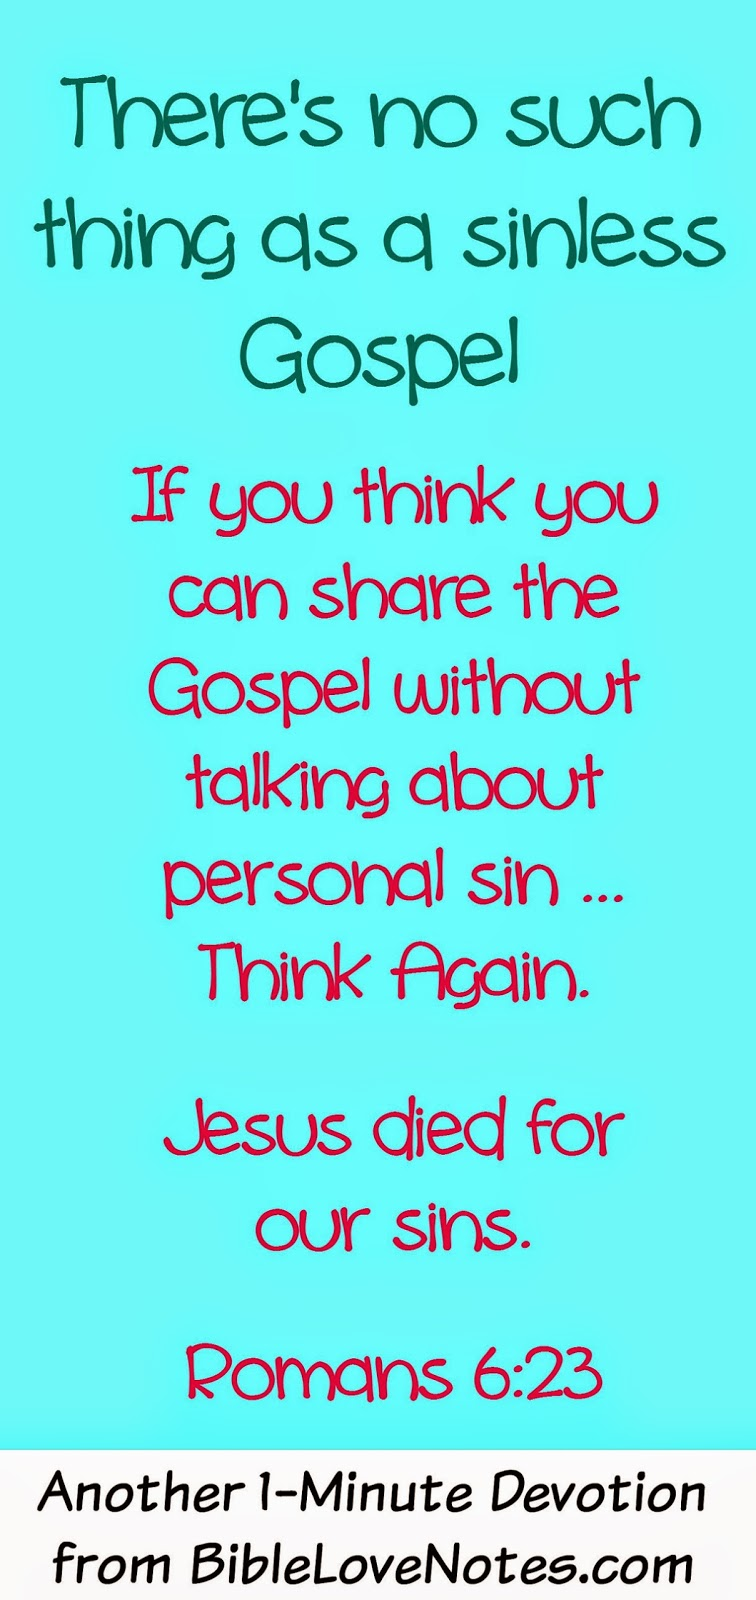 Jesus died for sins, the Gospel is about sin and redemption, sin is a necessary part of the Gospel